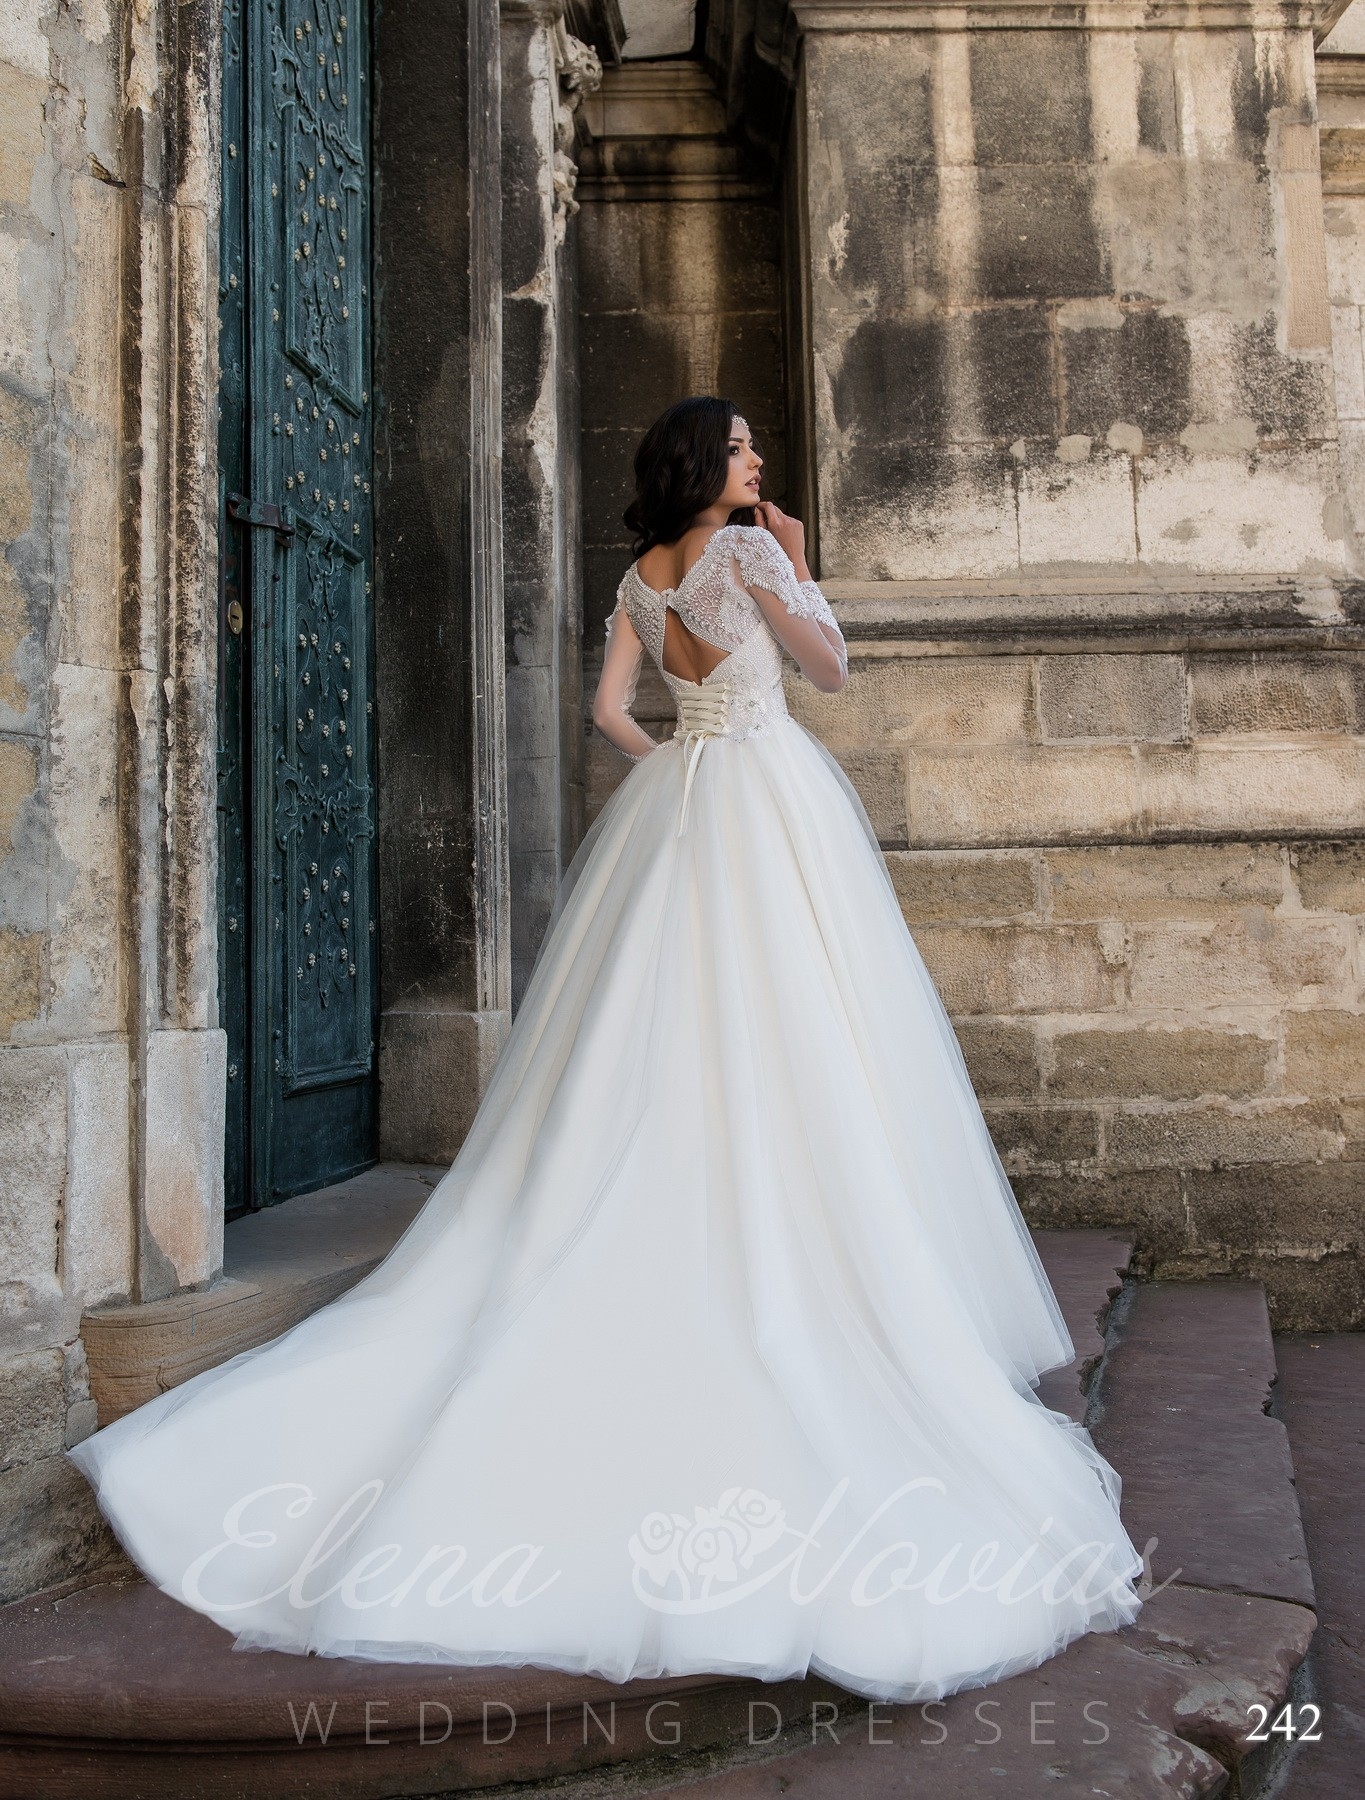 Wedding dress on the Vogue cover model 242